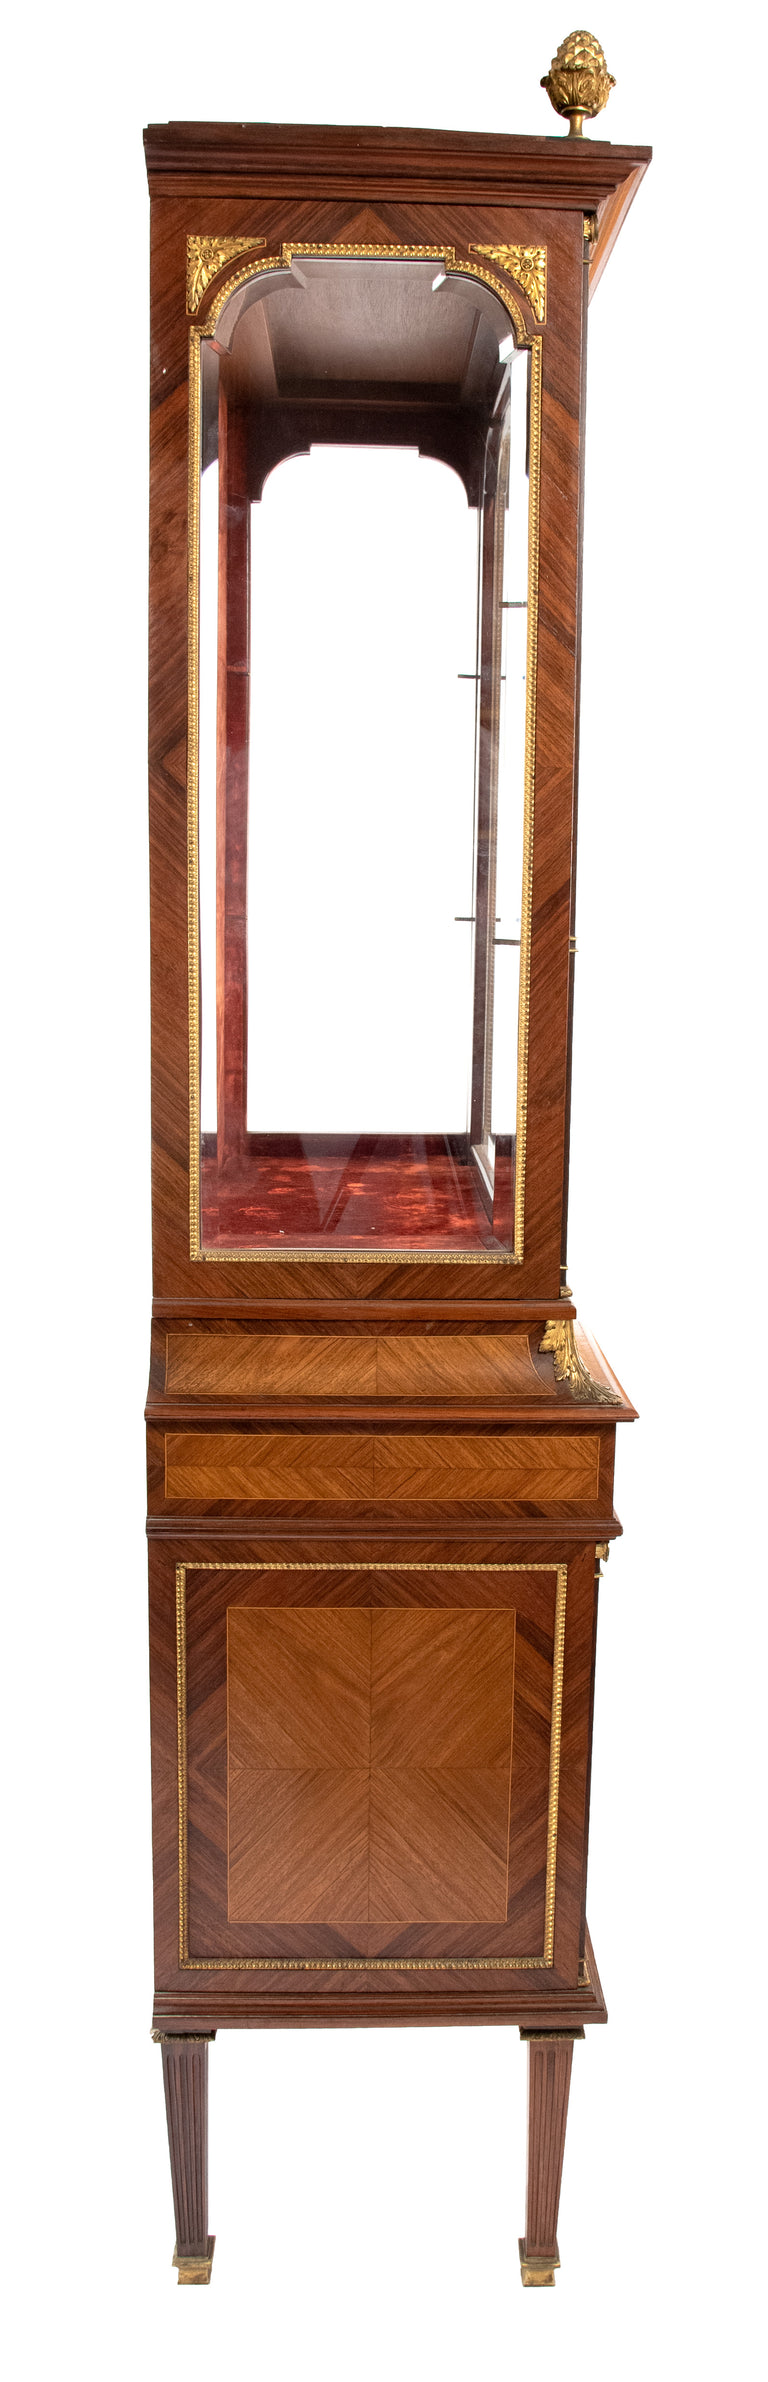 19th Century French Louis XVI Style Vitrine by A. Bastet, Lyon